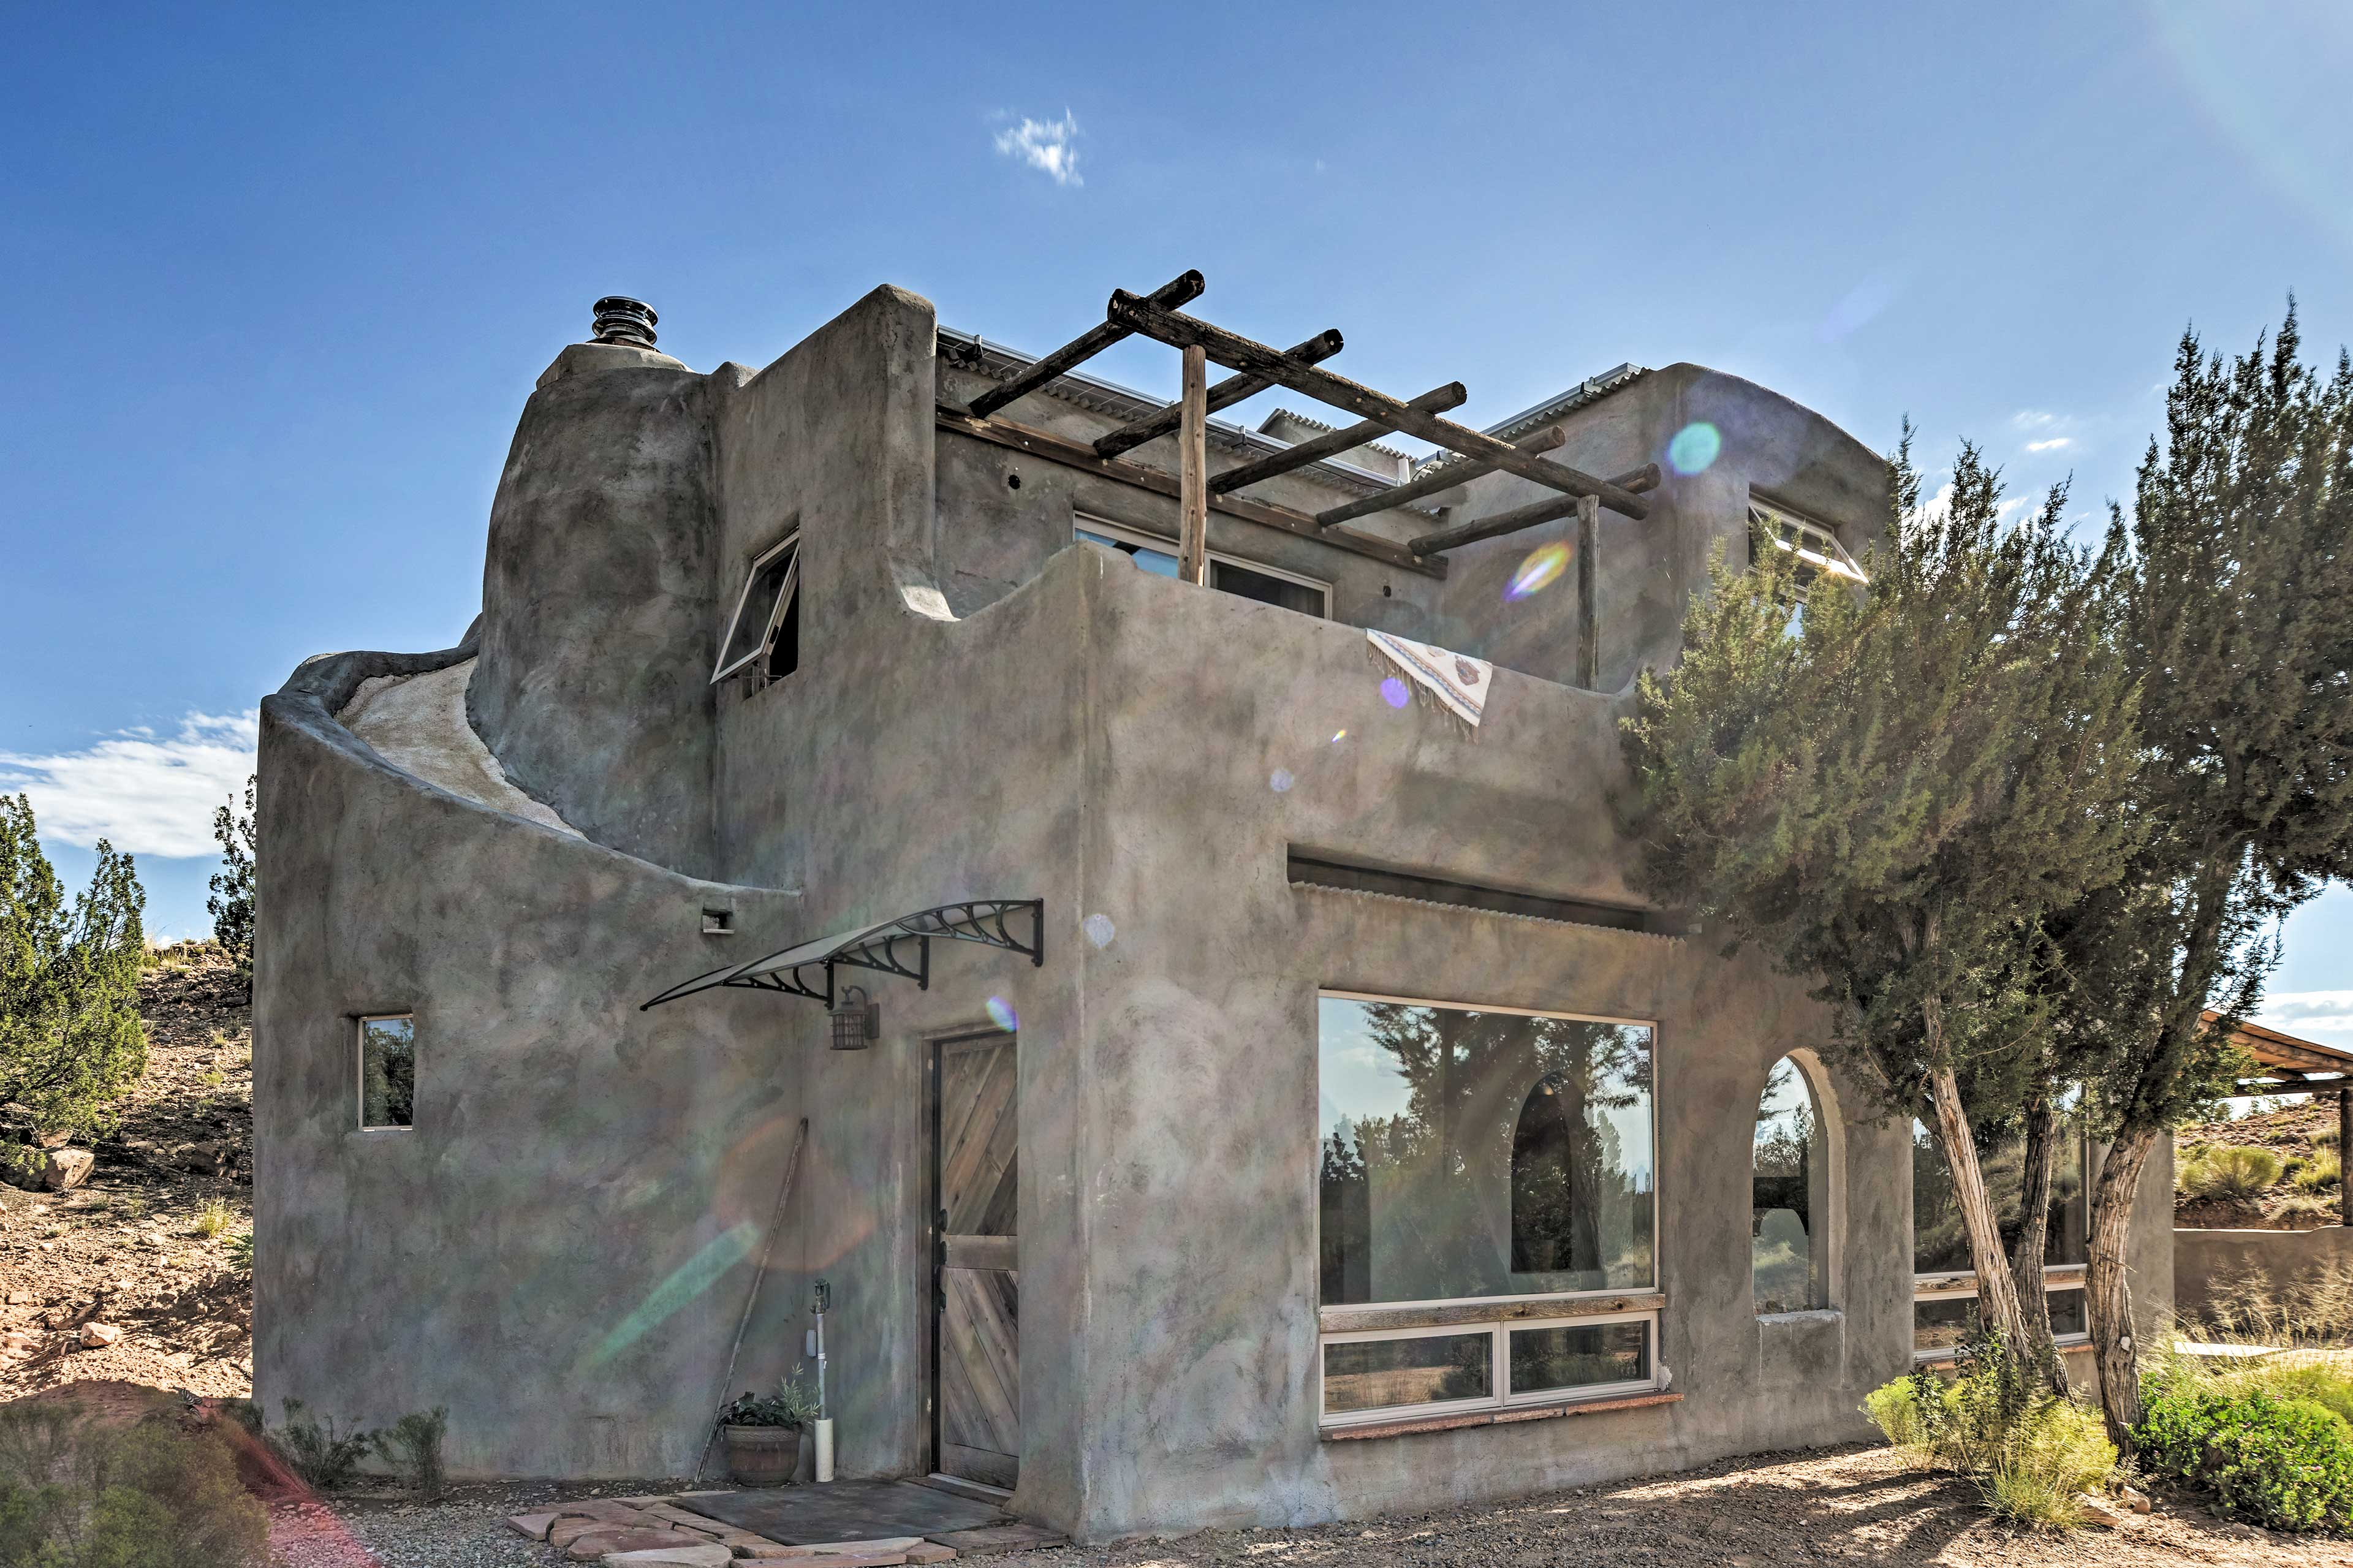 Make this unique San Ysidro property your home-away-from-home.